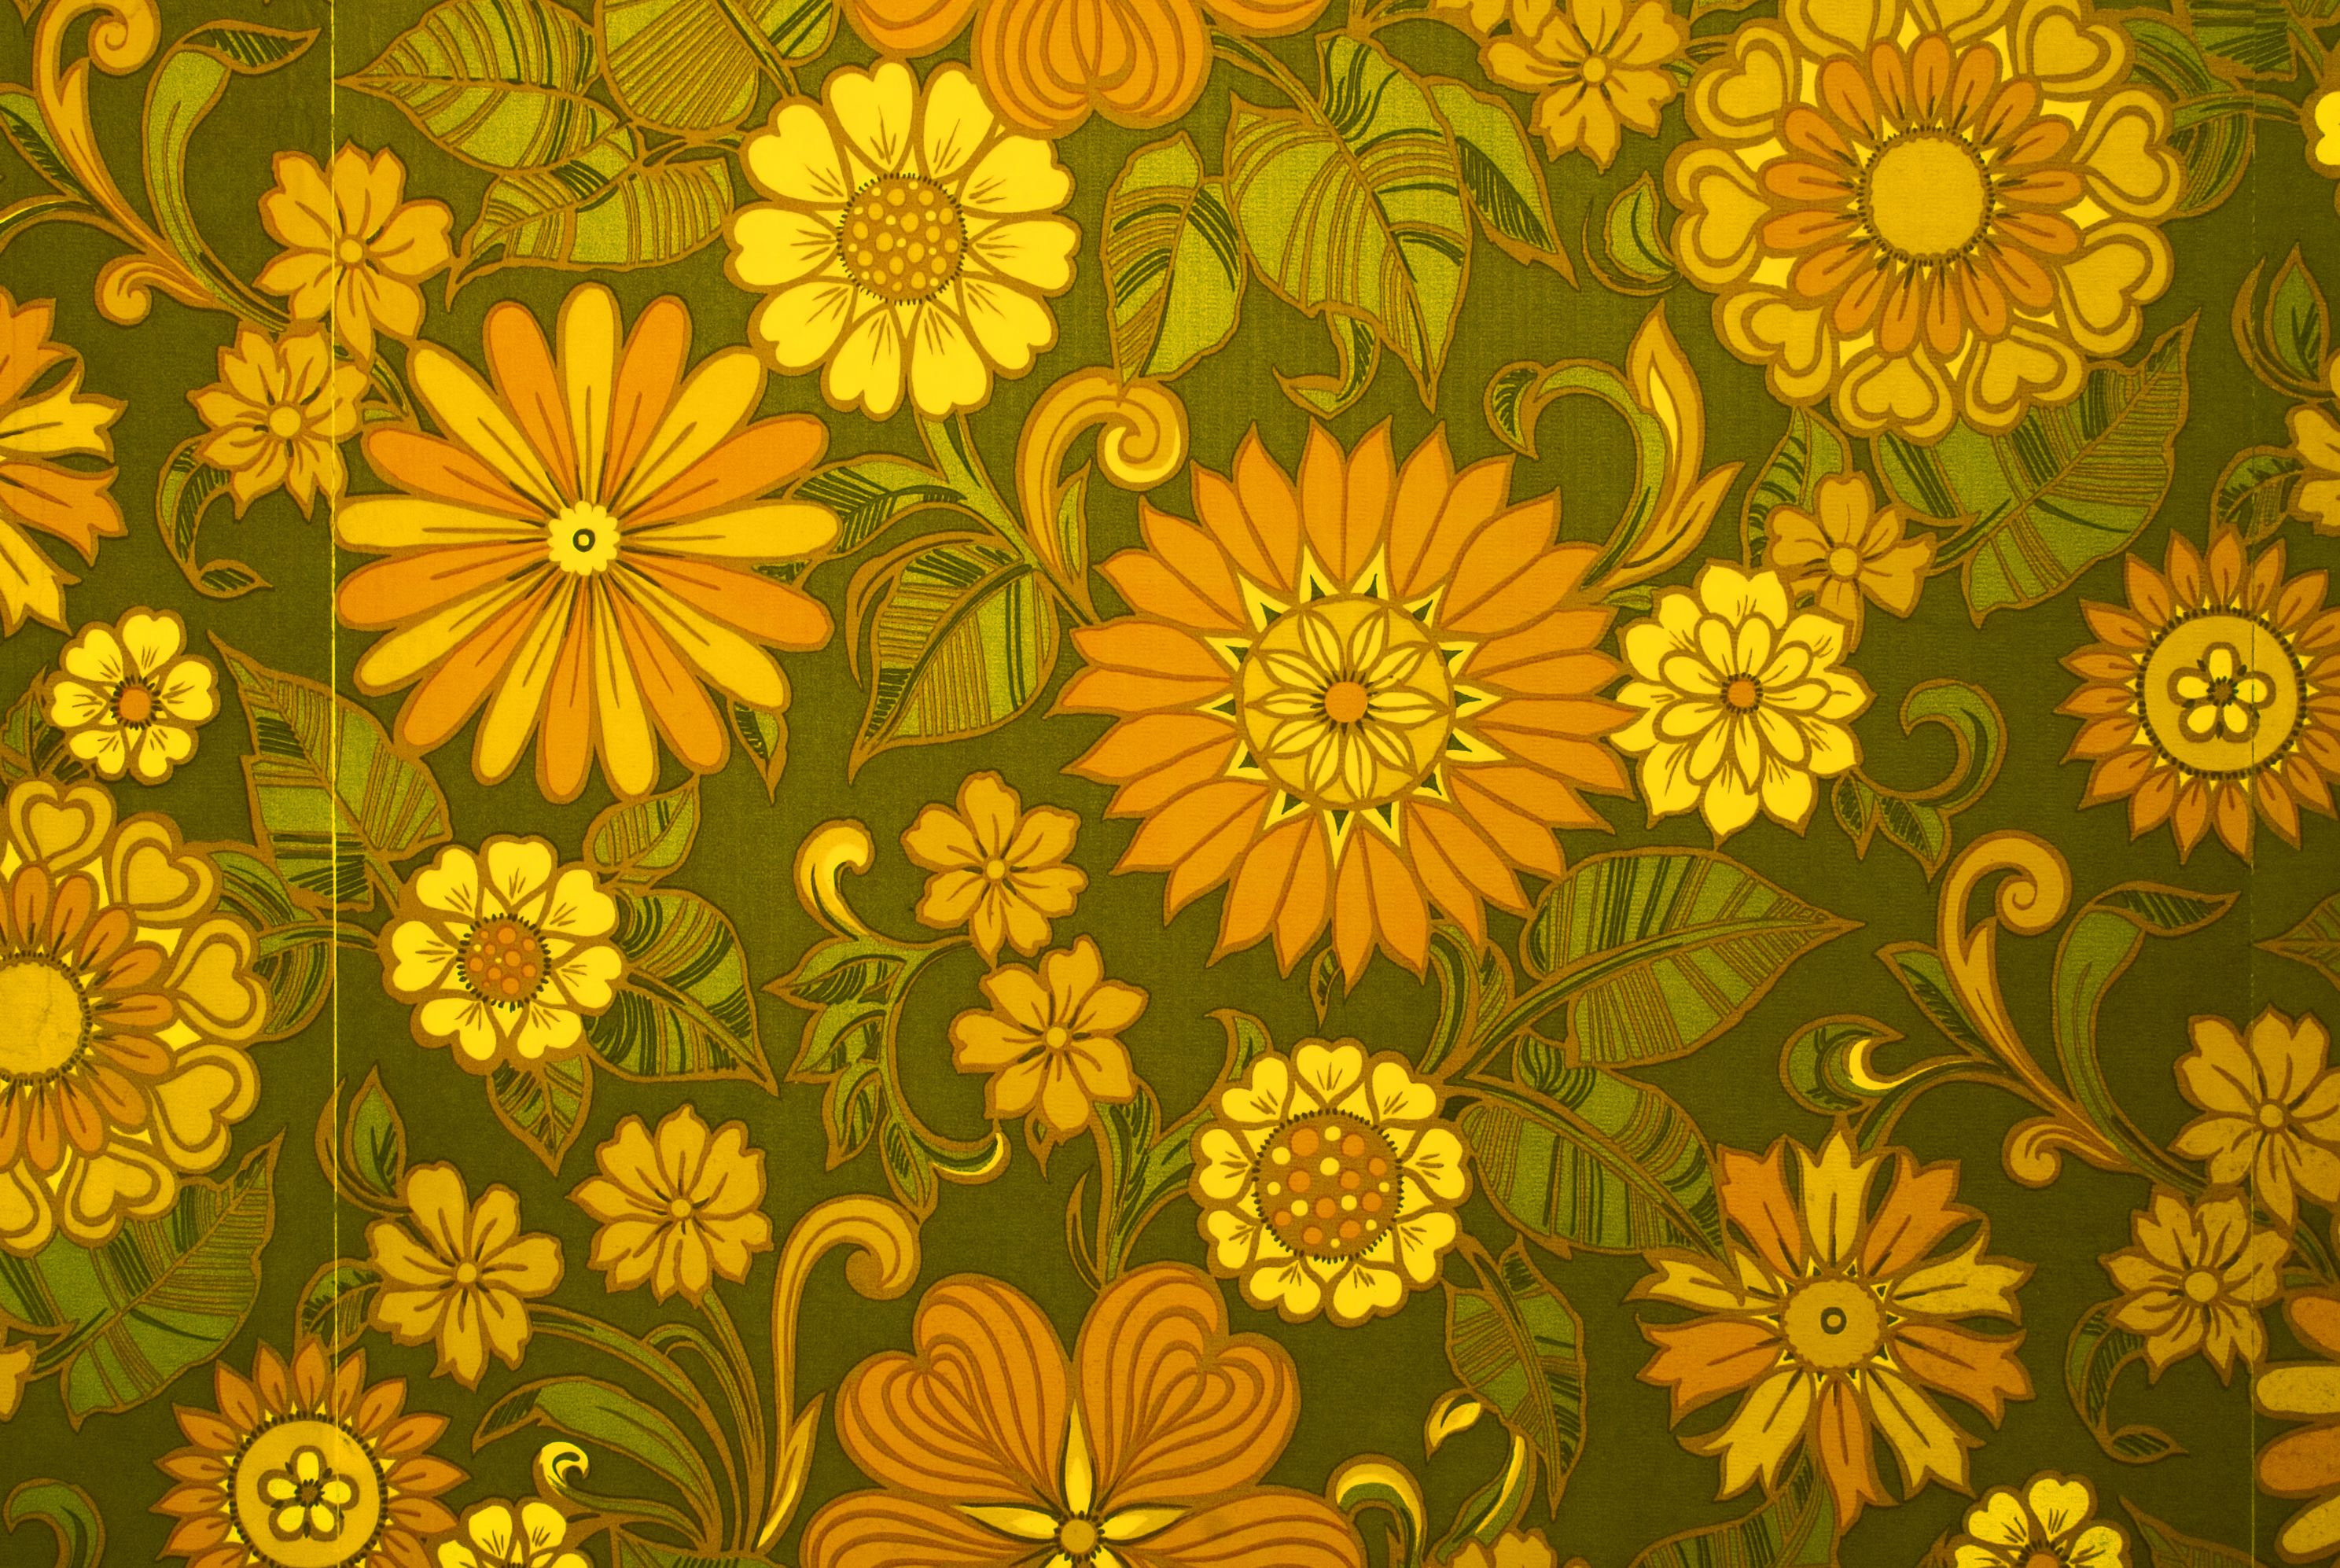 20s Flower Power Wallpapers   Top Free 20s Flower Power ...